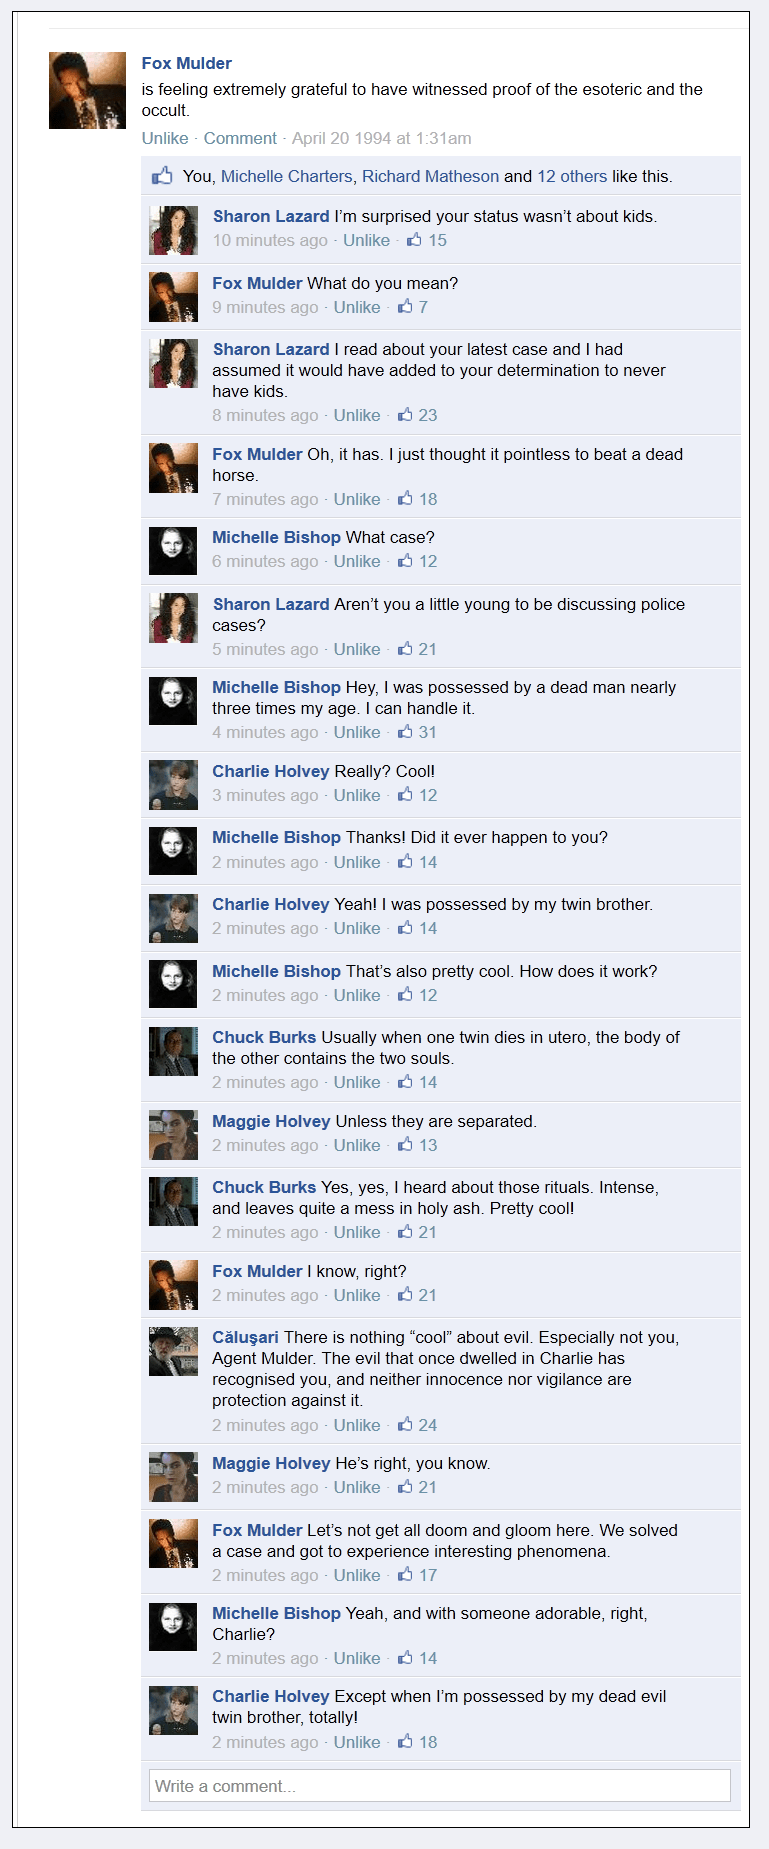 The X-Files Facebook Project on Sahar's Blog s02e21 The Calusari